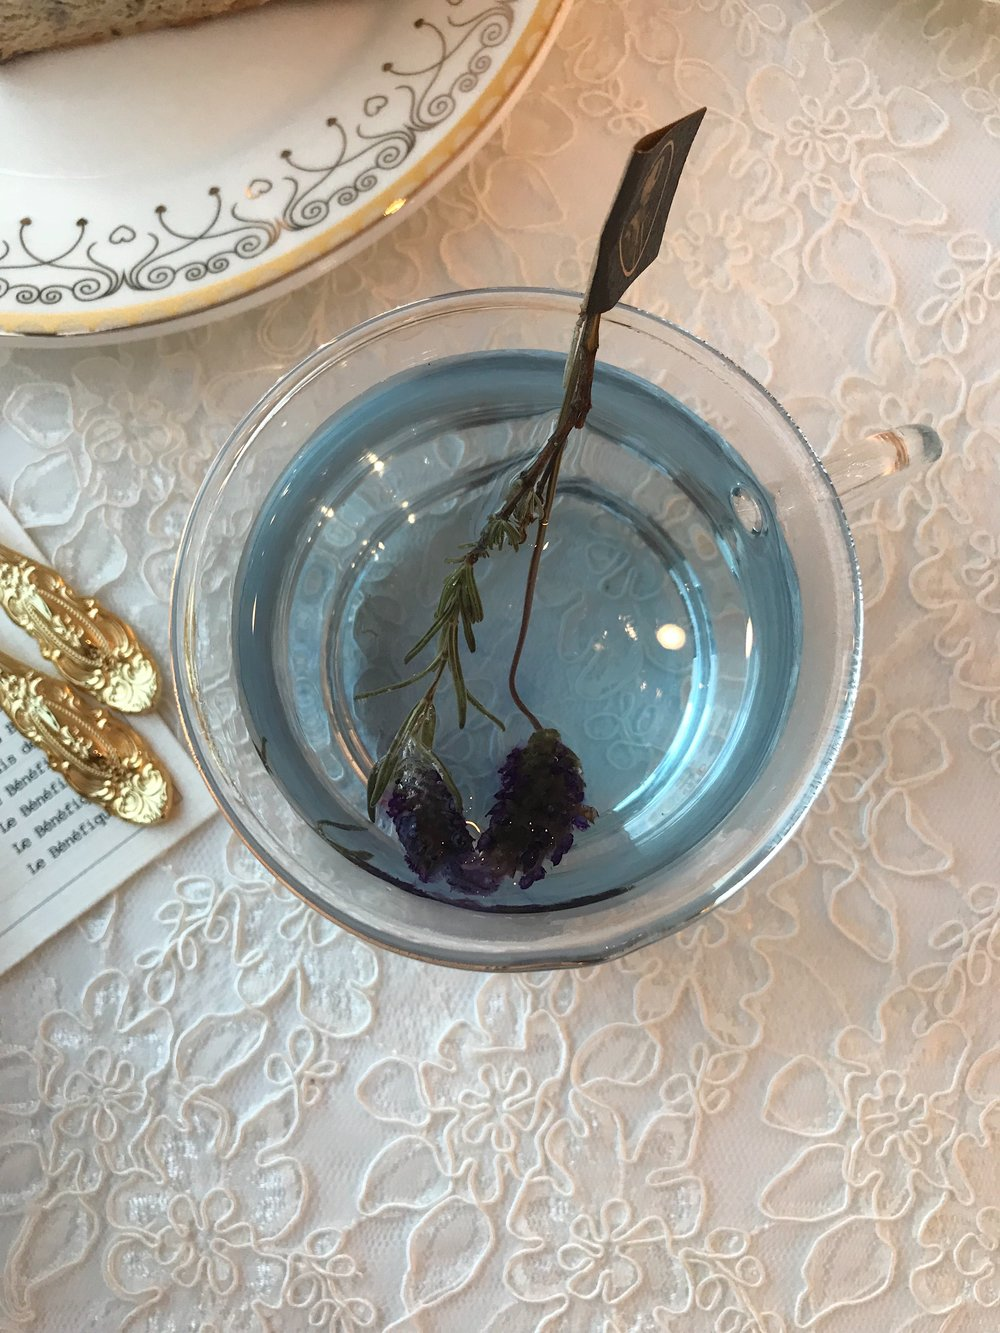 Tea Time - Rose & Blanc - Lavender Tea - sabineforever.com.JPG